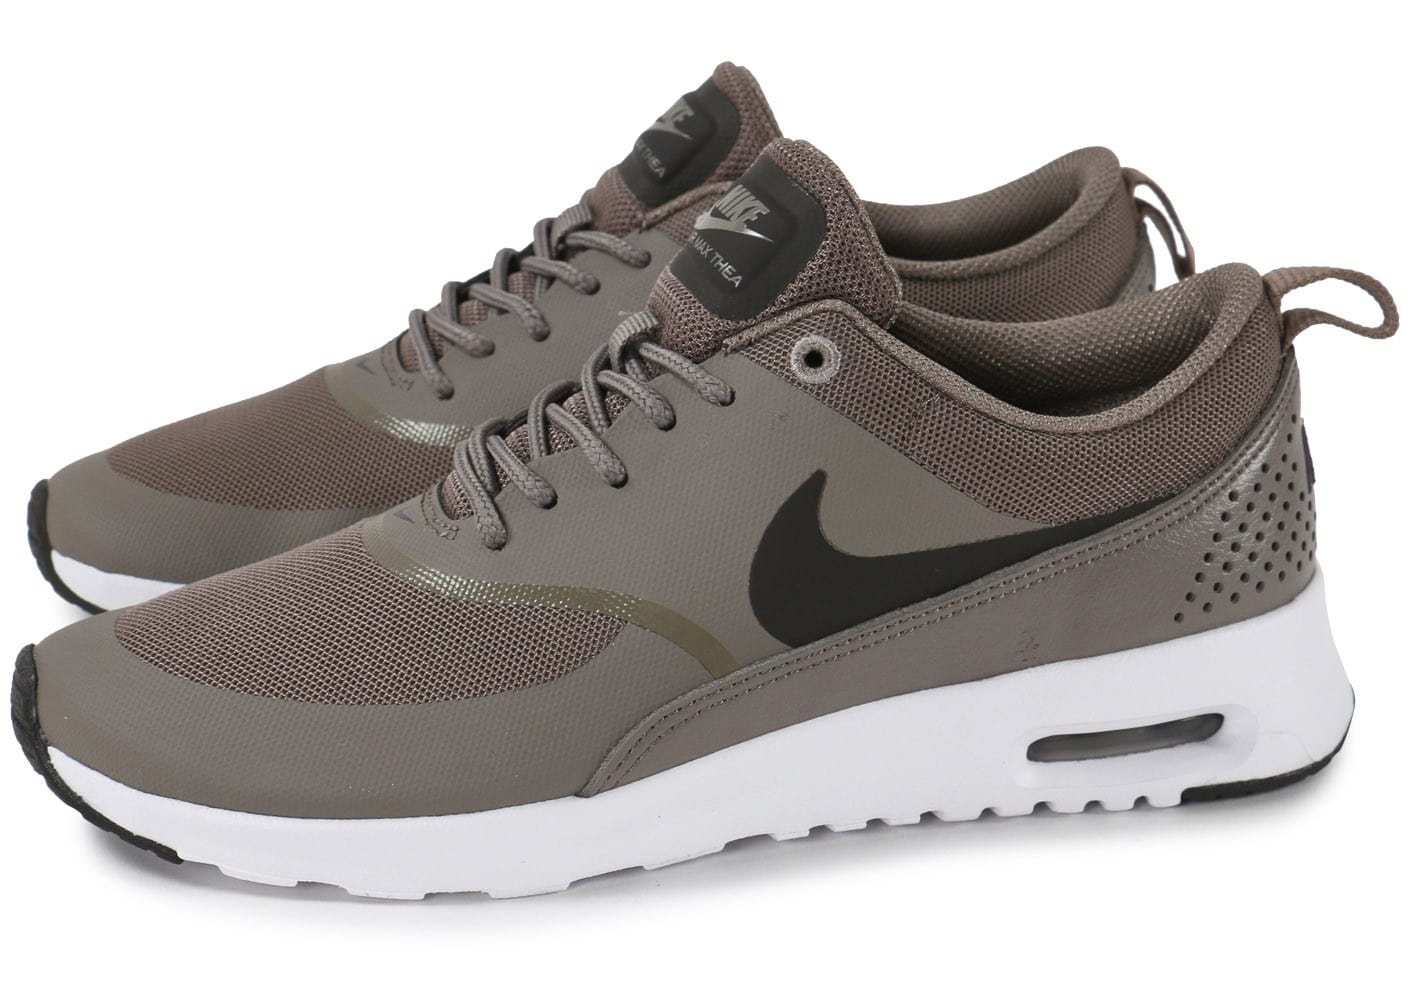 new concept 2bc82 65d67 Chaussures Nike Thea Air Max Iron Chausport TlF1Jc3K